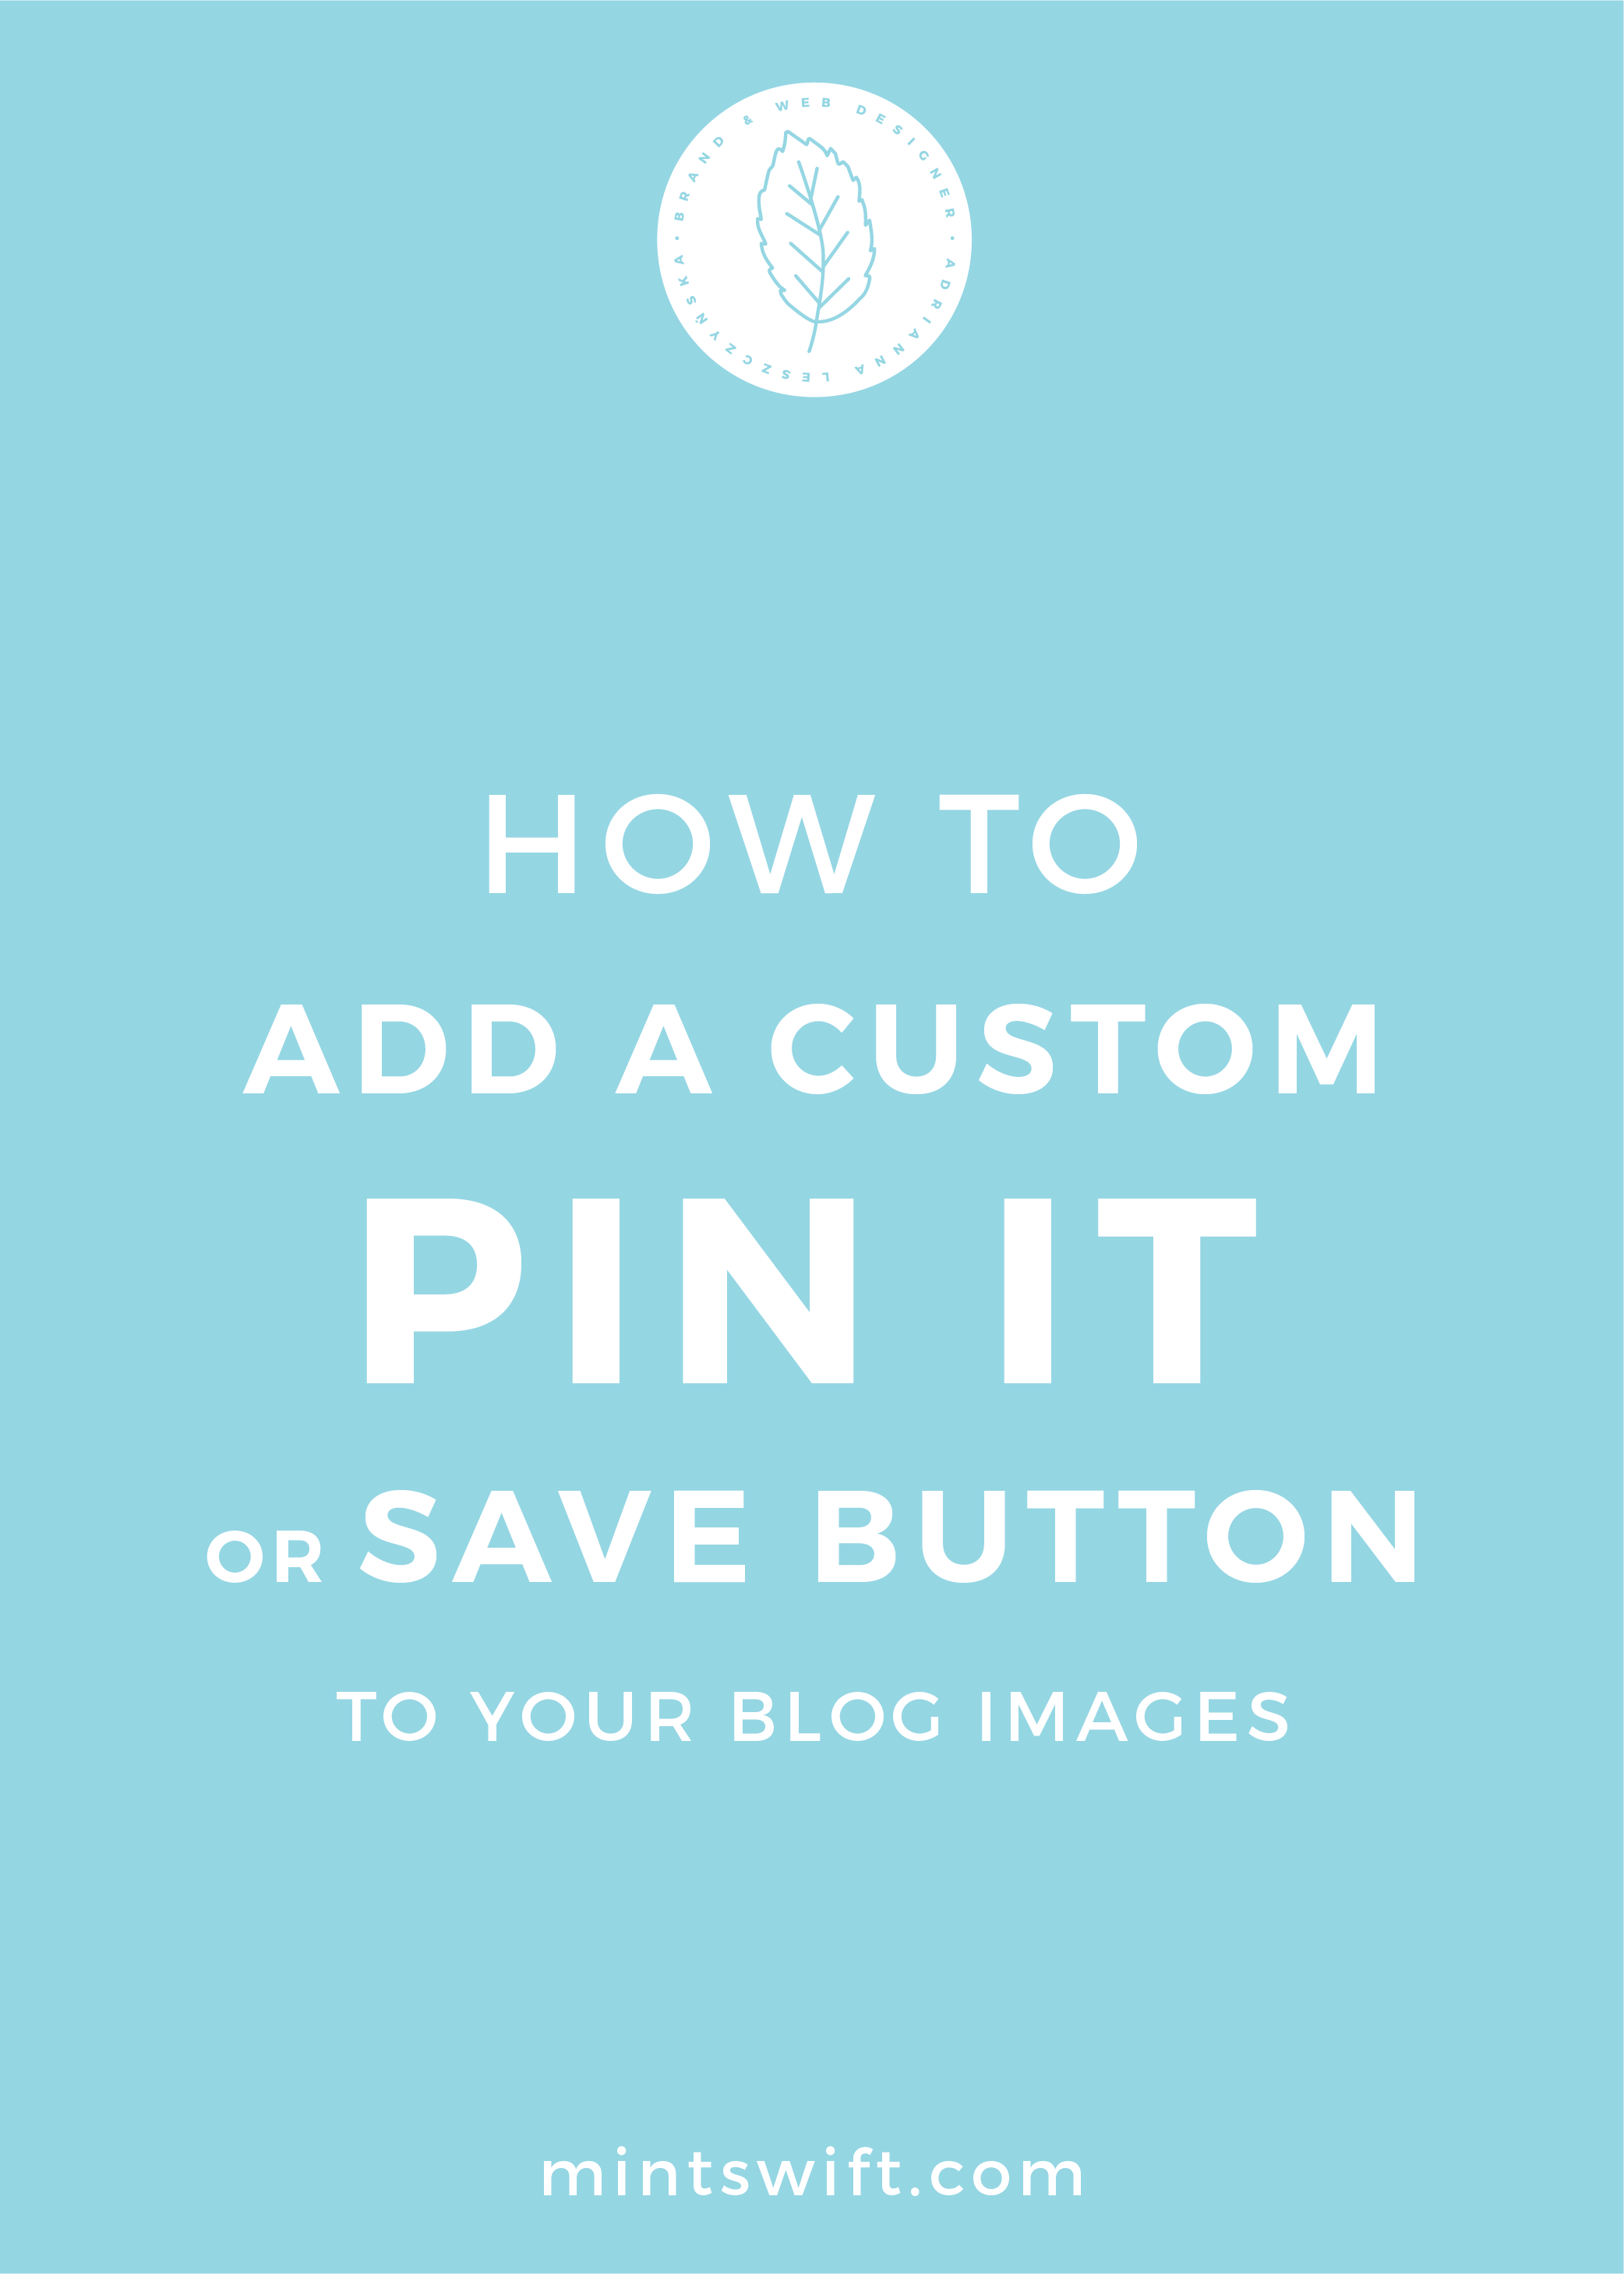 How to Add a Custom Pin It or Save Button to Your Blog Images - MintSwift